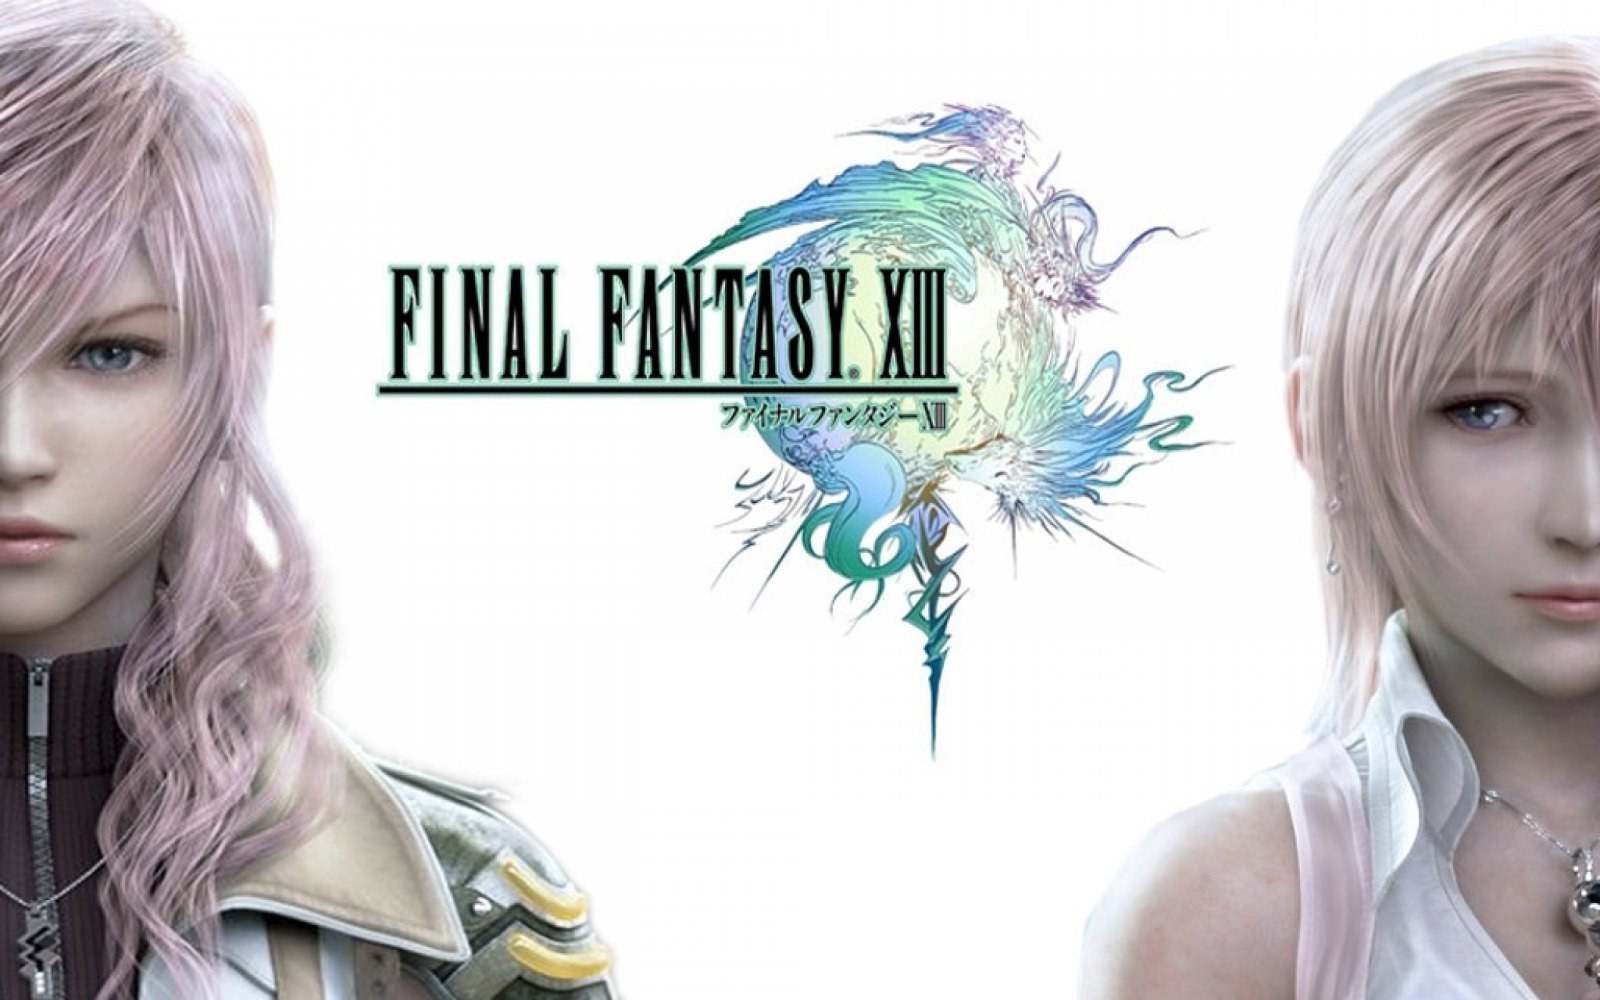 ff13 des photos de - photo #35